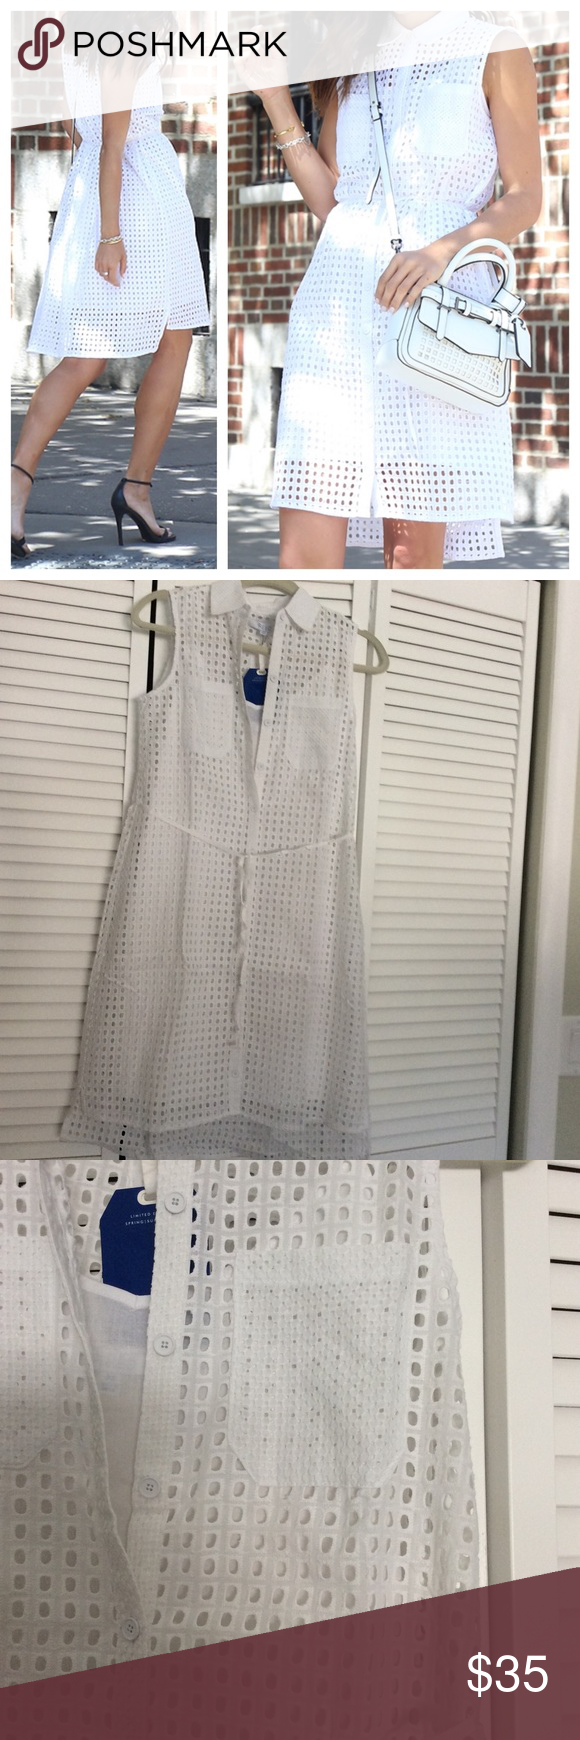 """Reed Eyelet Dress Chic white, eyelet shirtdress, has removable under slip. 2 chest pockets and buttons all the way down. Approximately 36"""" in front and 39"""" in back. Reed for kohls, true to size.   *Condition: New   No Trades ✅ Discounted Bundles ✅ Reasonable Offers Reed Dresses"""